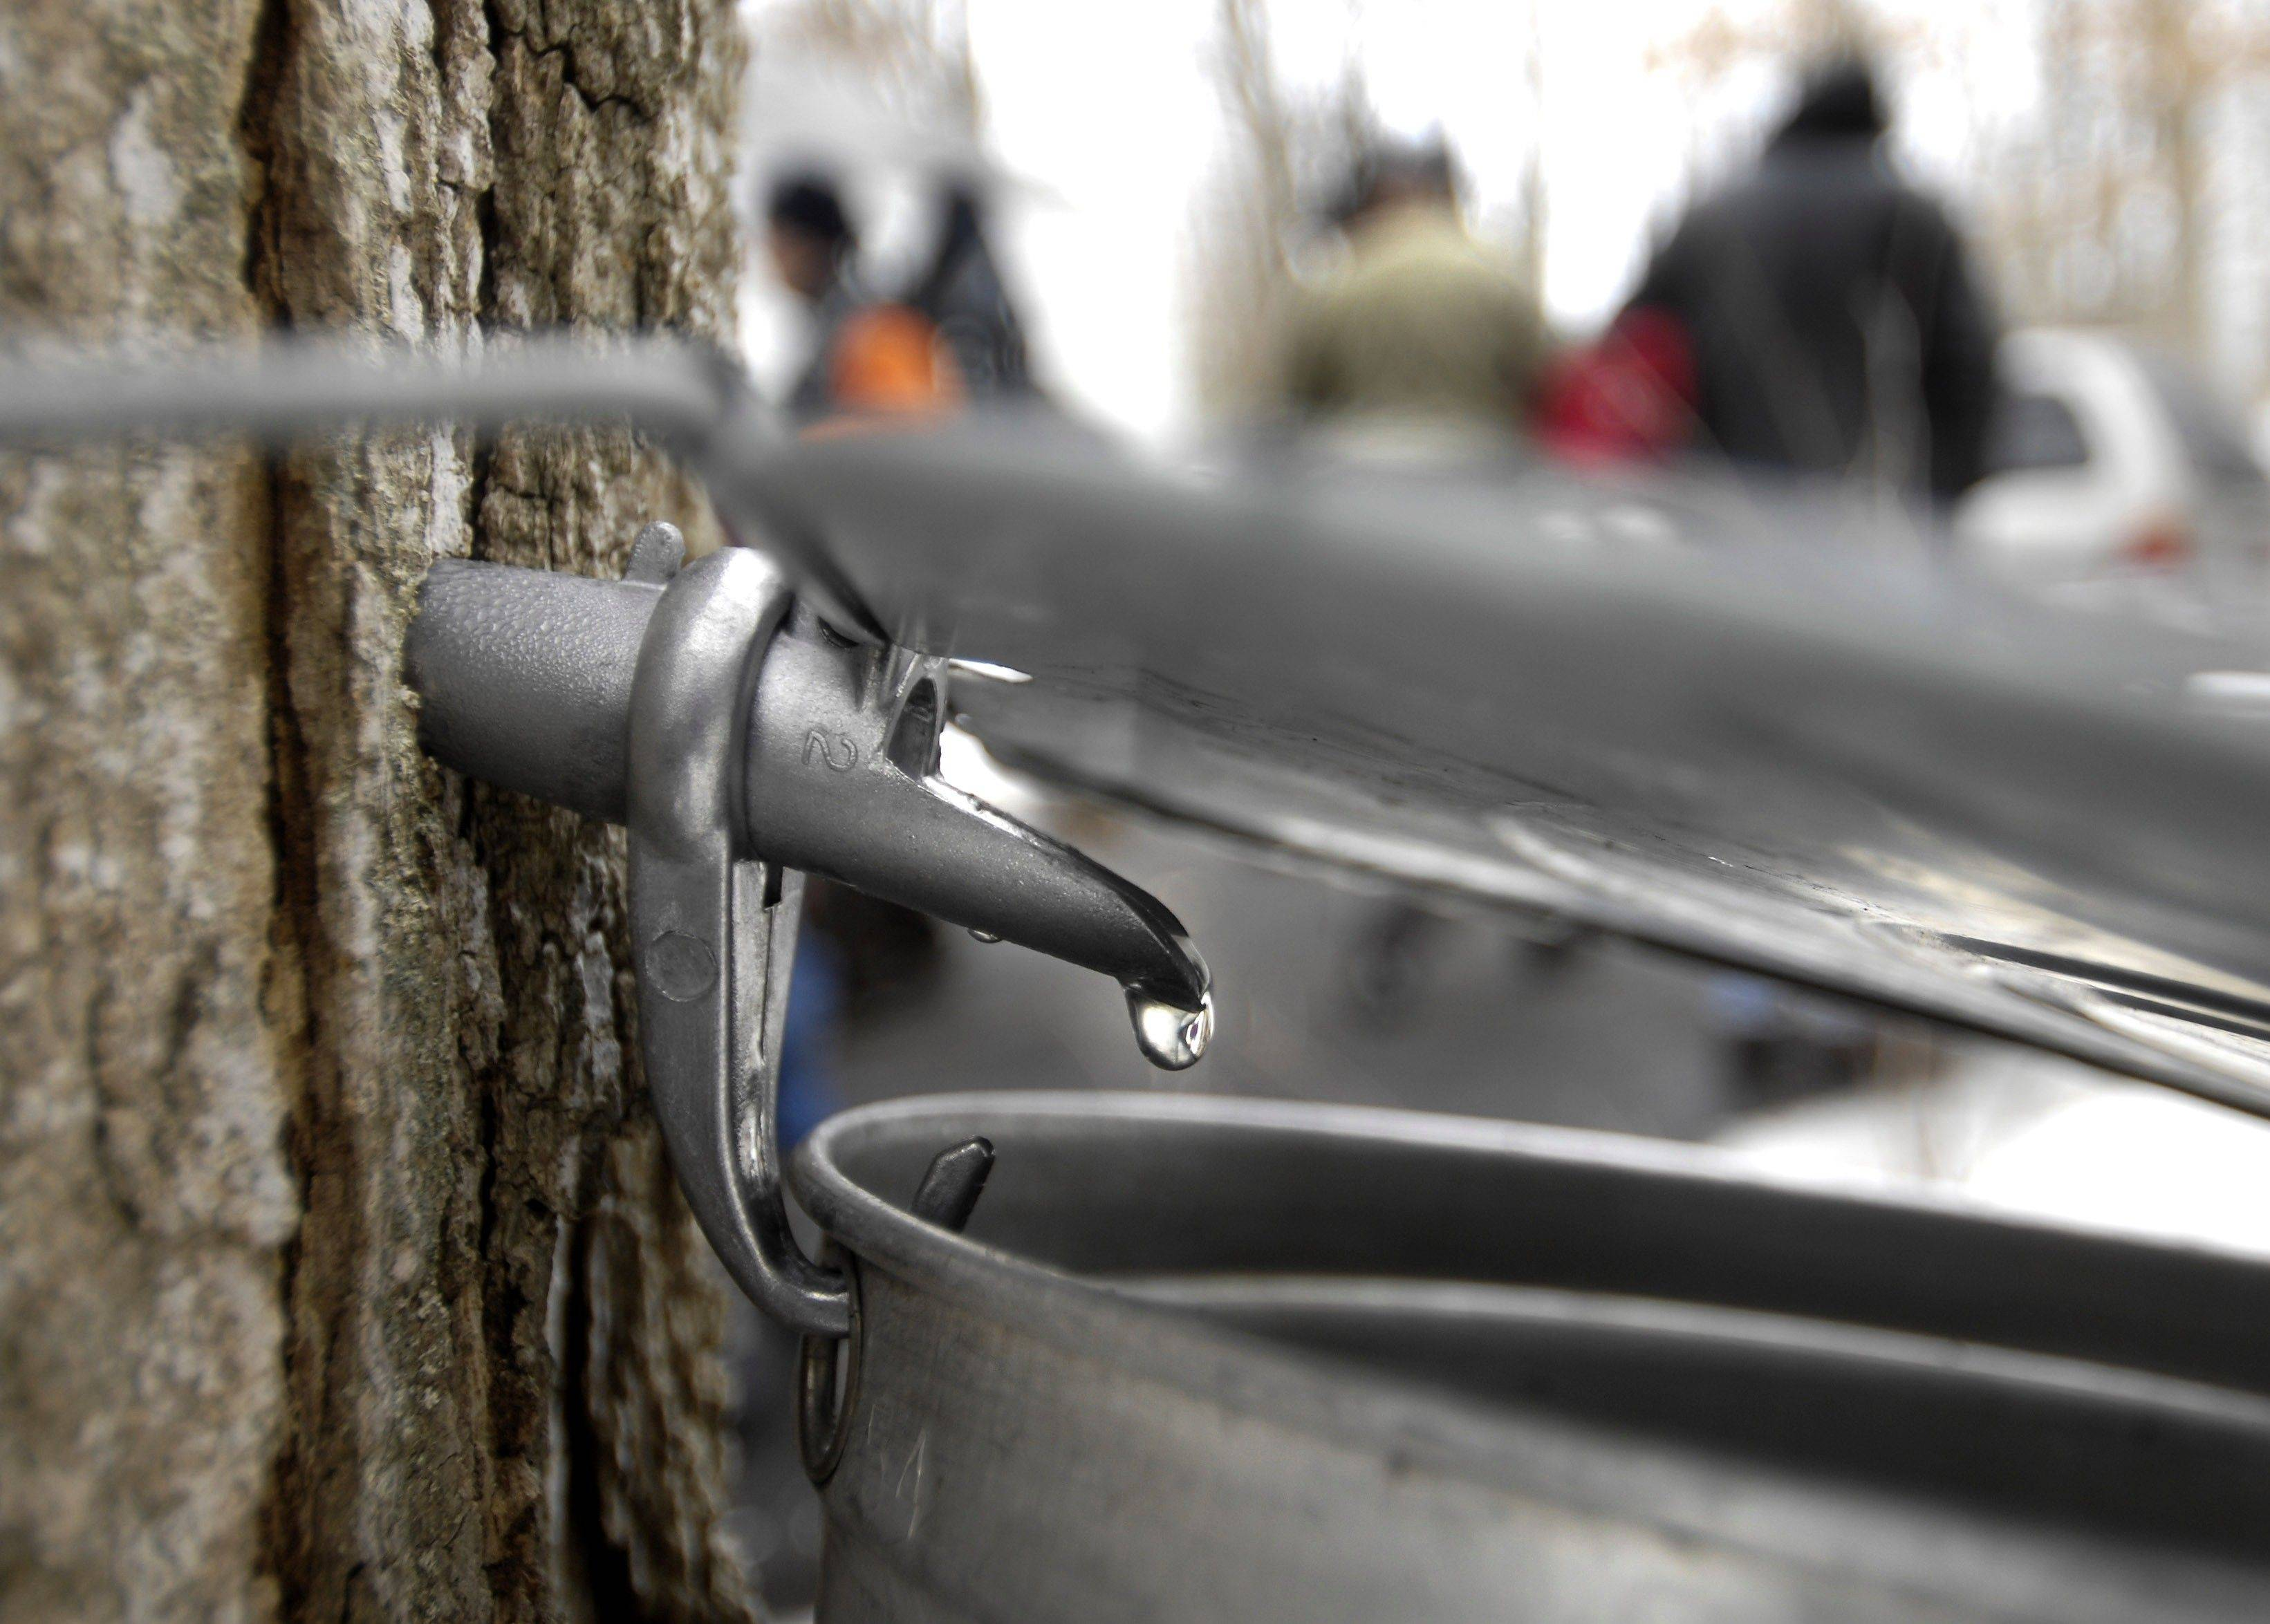 A drop of pure maple sap hangs on a tap at the Tekakwitha Woods Forest Preserve in St. Charles.